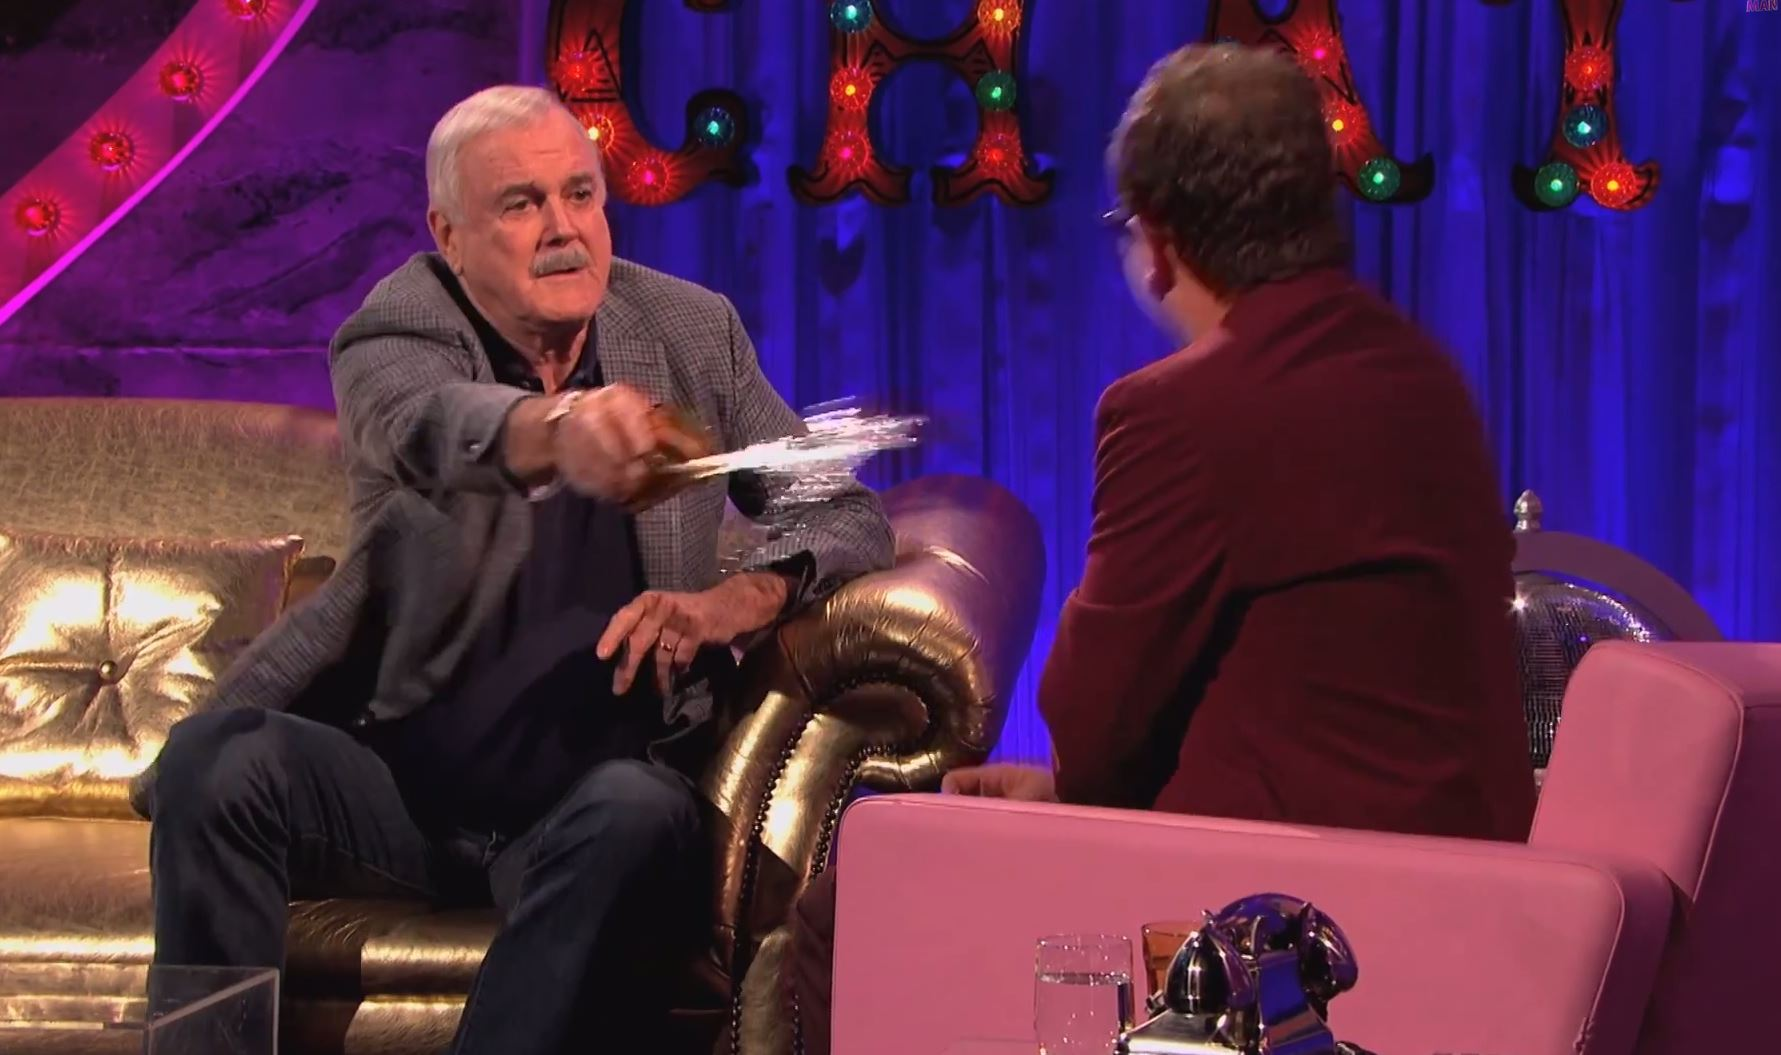 Legal bills, live streaming and throwing drinks over Alan Carr: How to publicise Monty Python's last hurrah according to John Cleese